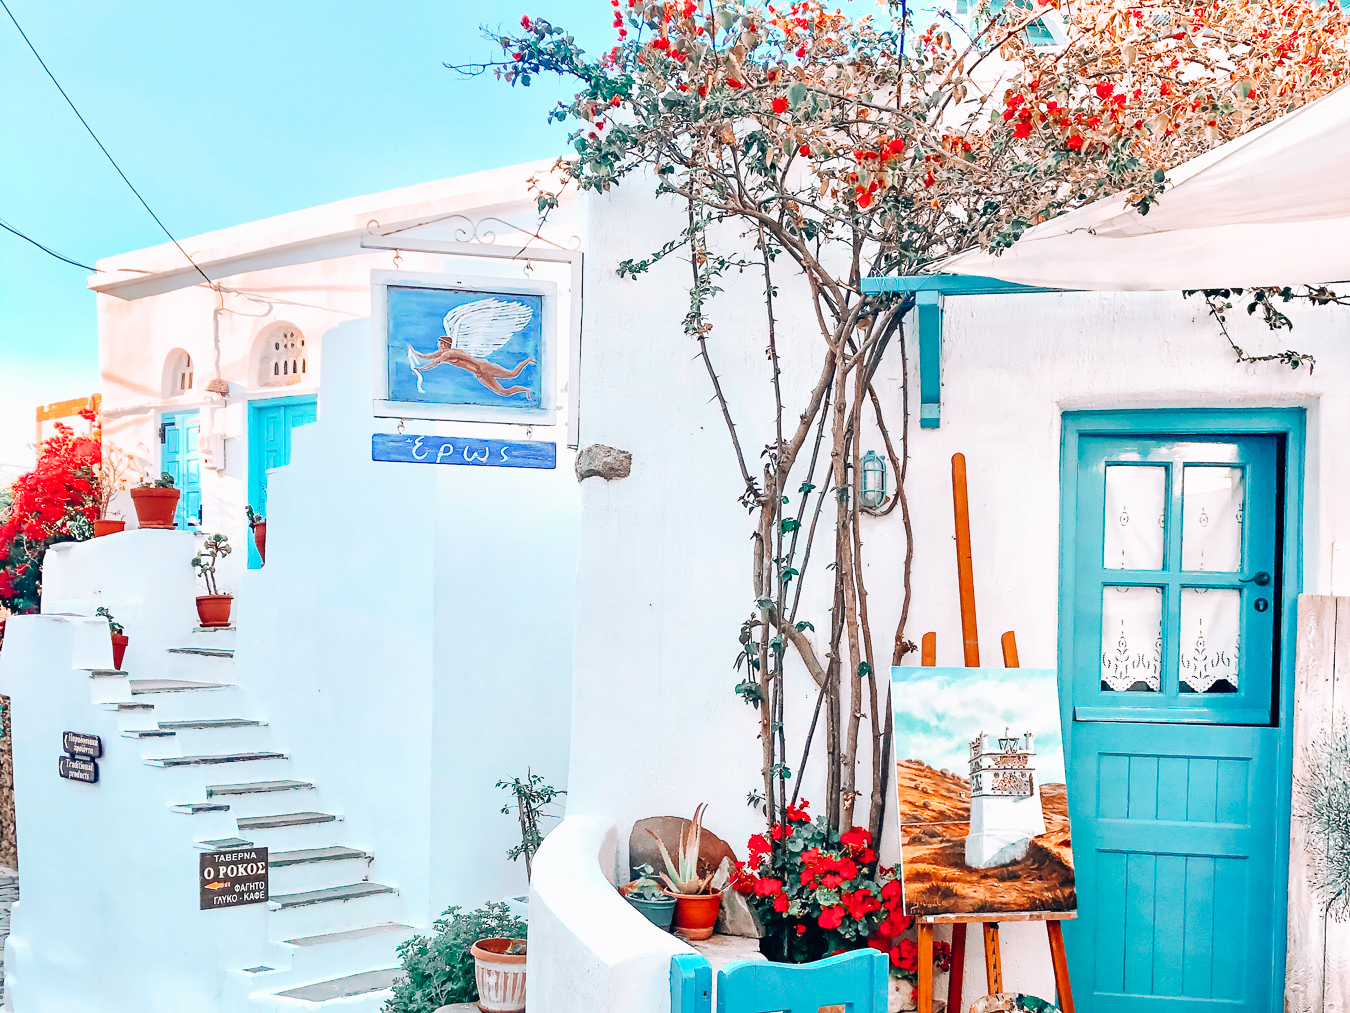 Building in Tinos, Greece